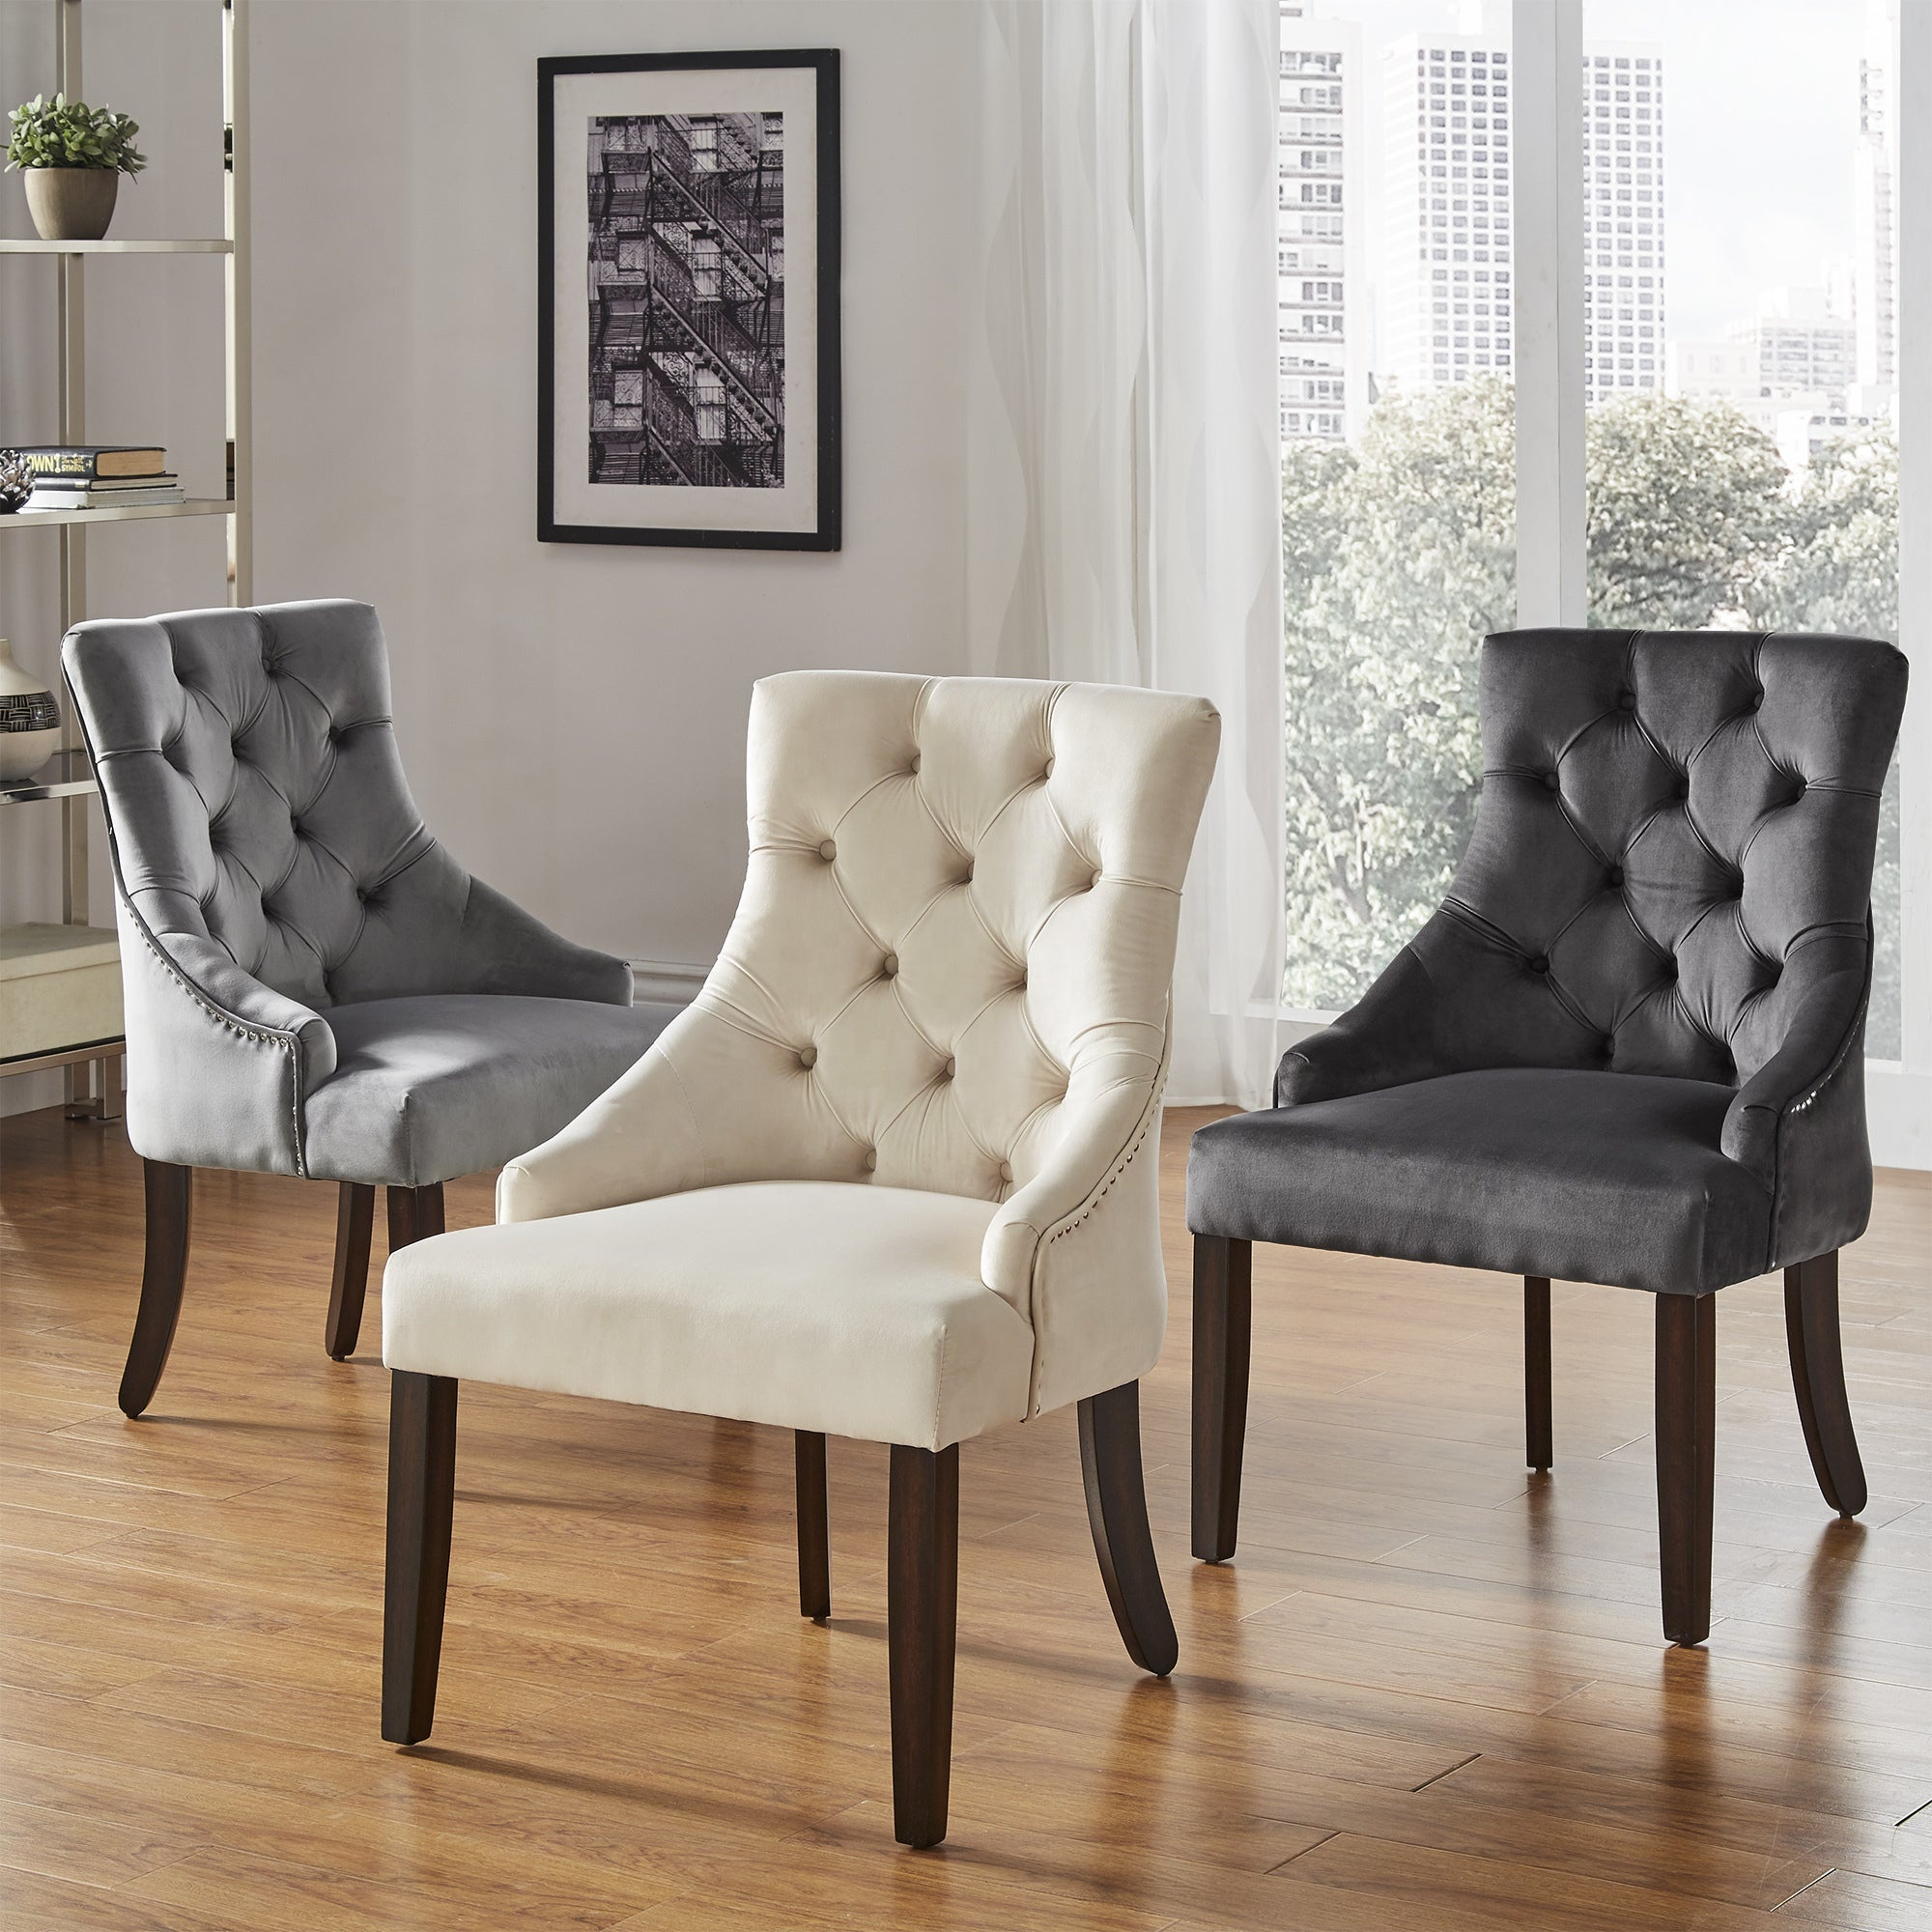 Modern fabric dining room Furniture luxury dining <strong>chair</strong>